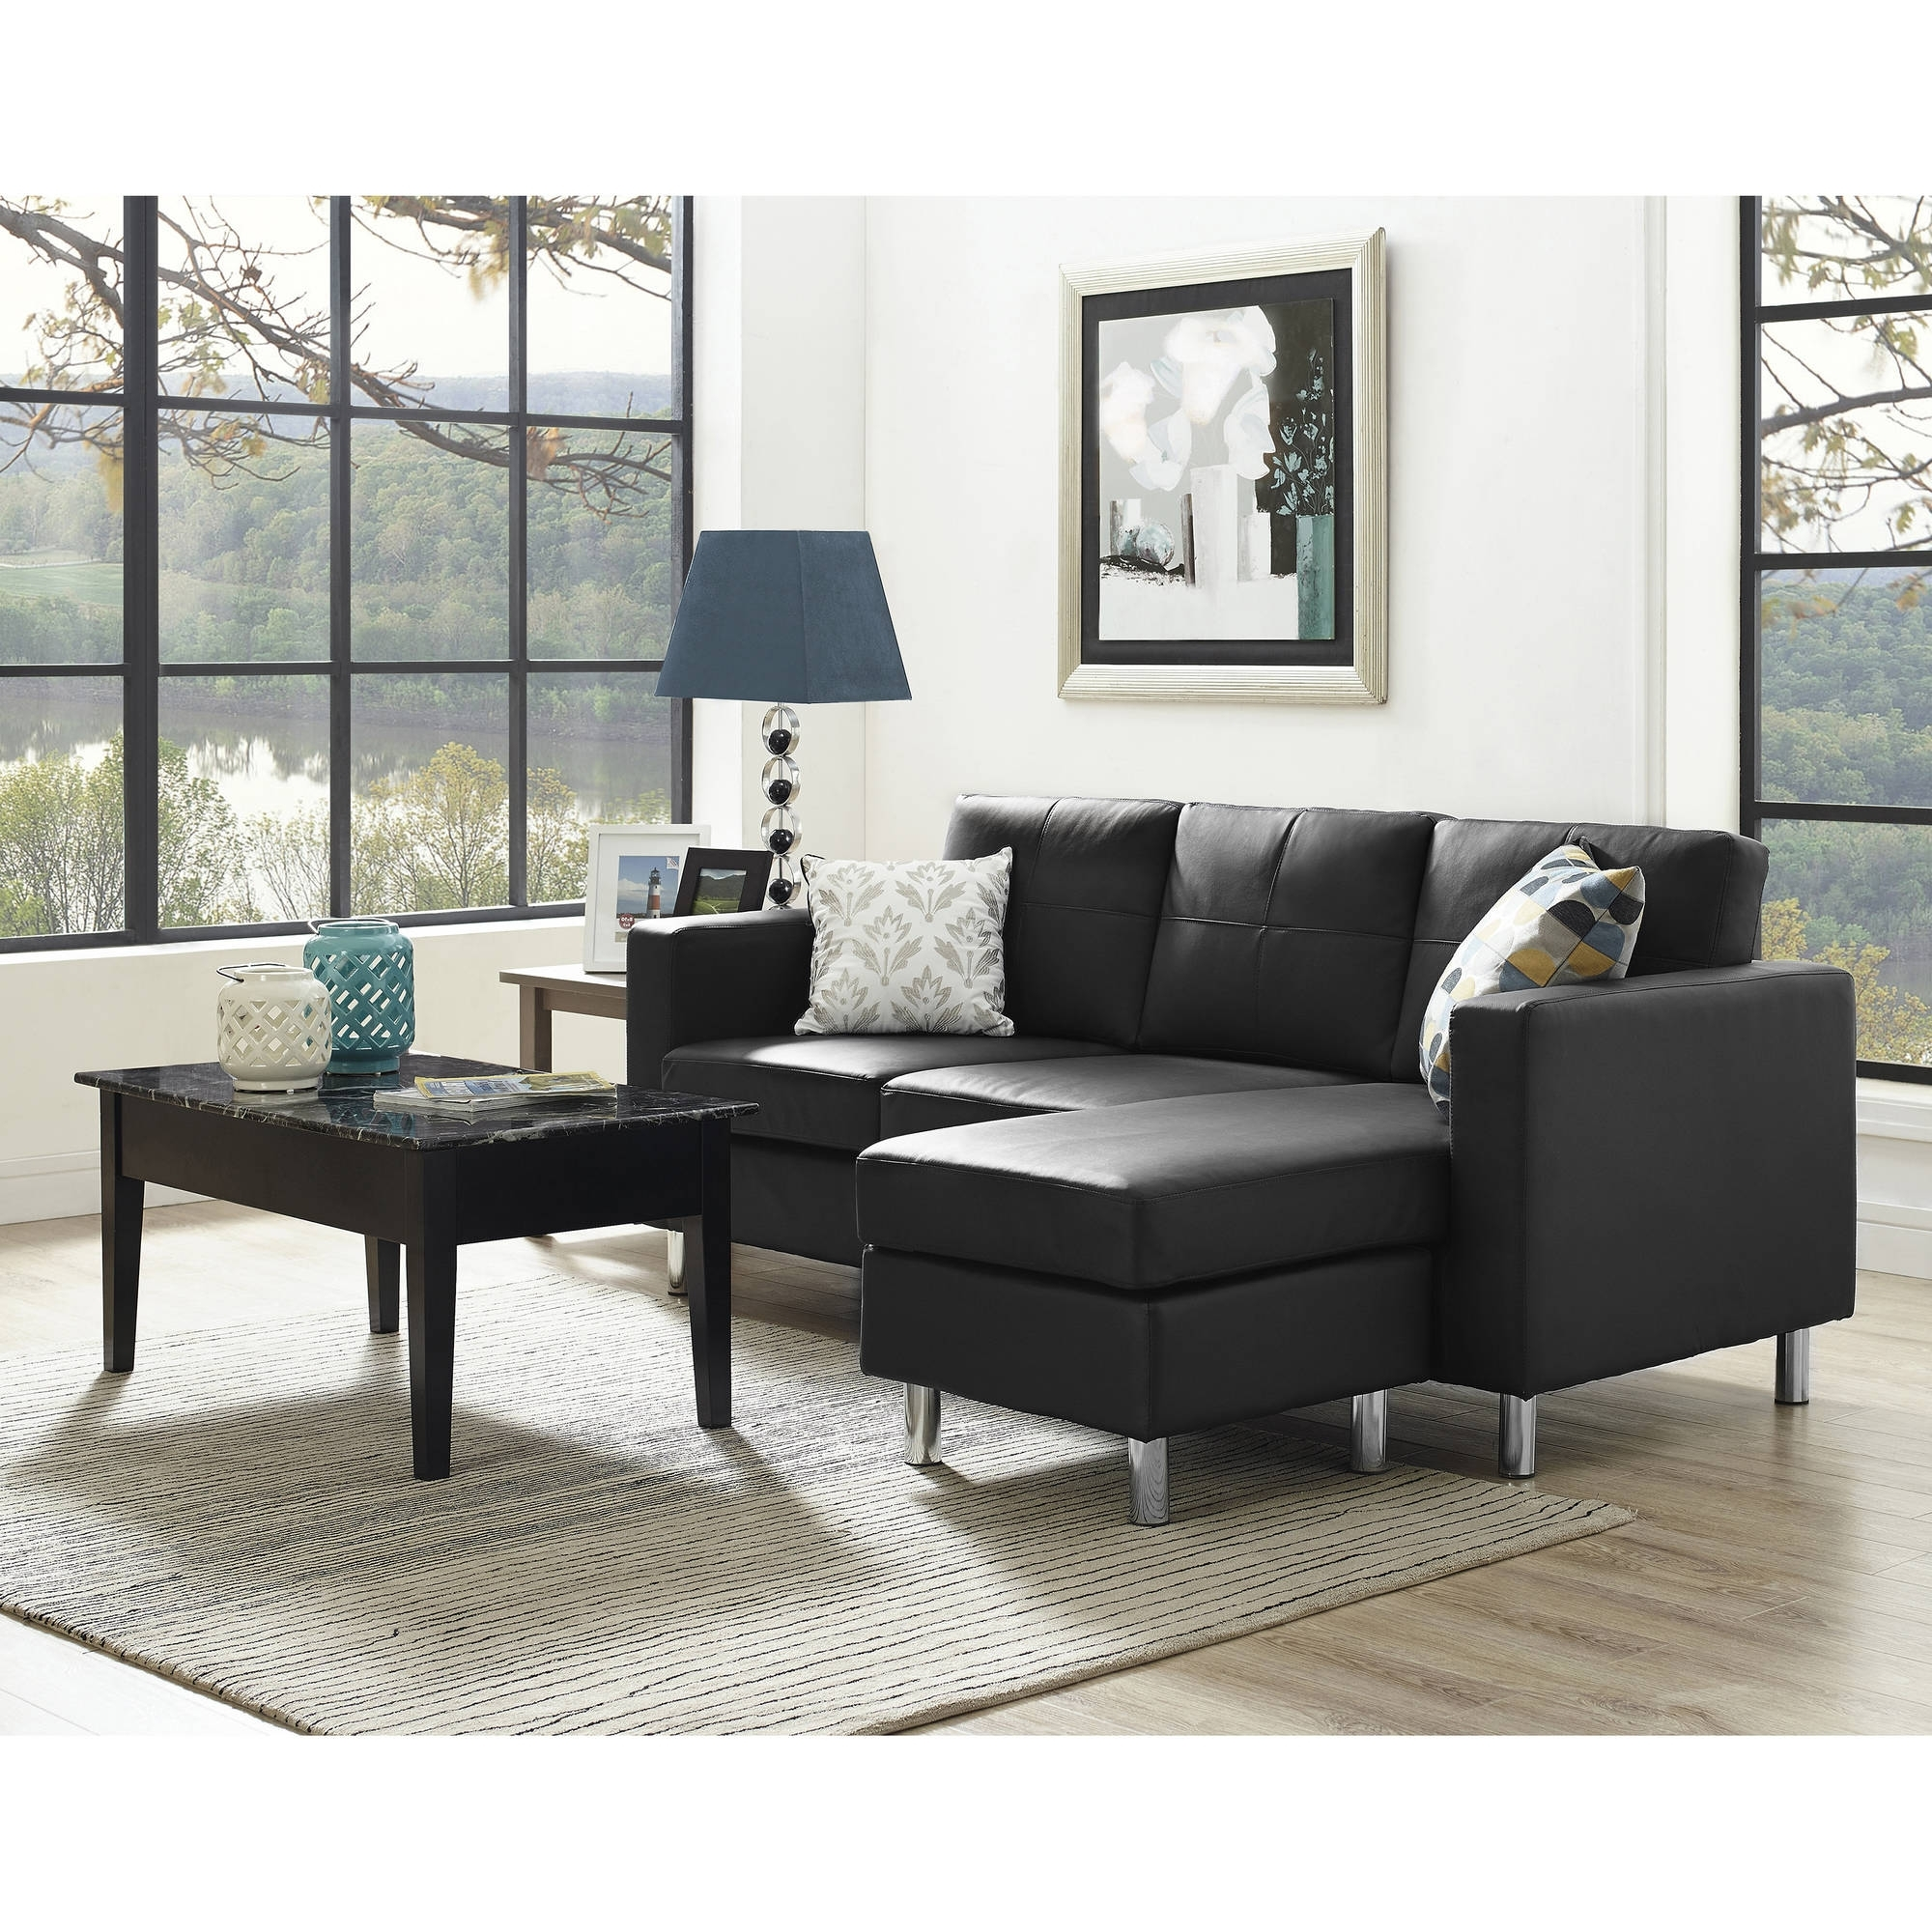 2018 Sectional Sofas For Small Areas With Choice (Gallery 7 of 20)